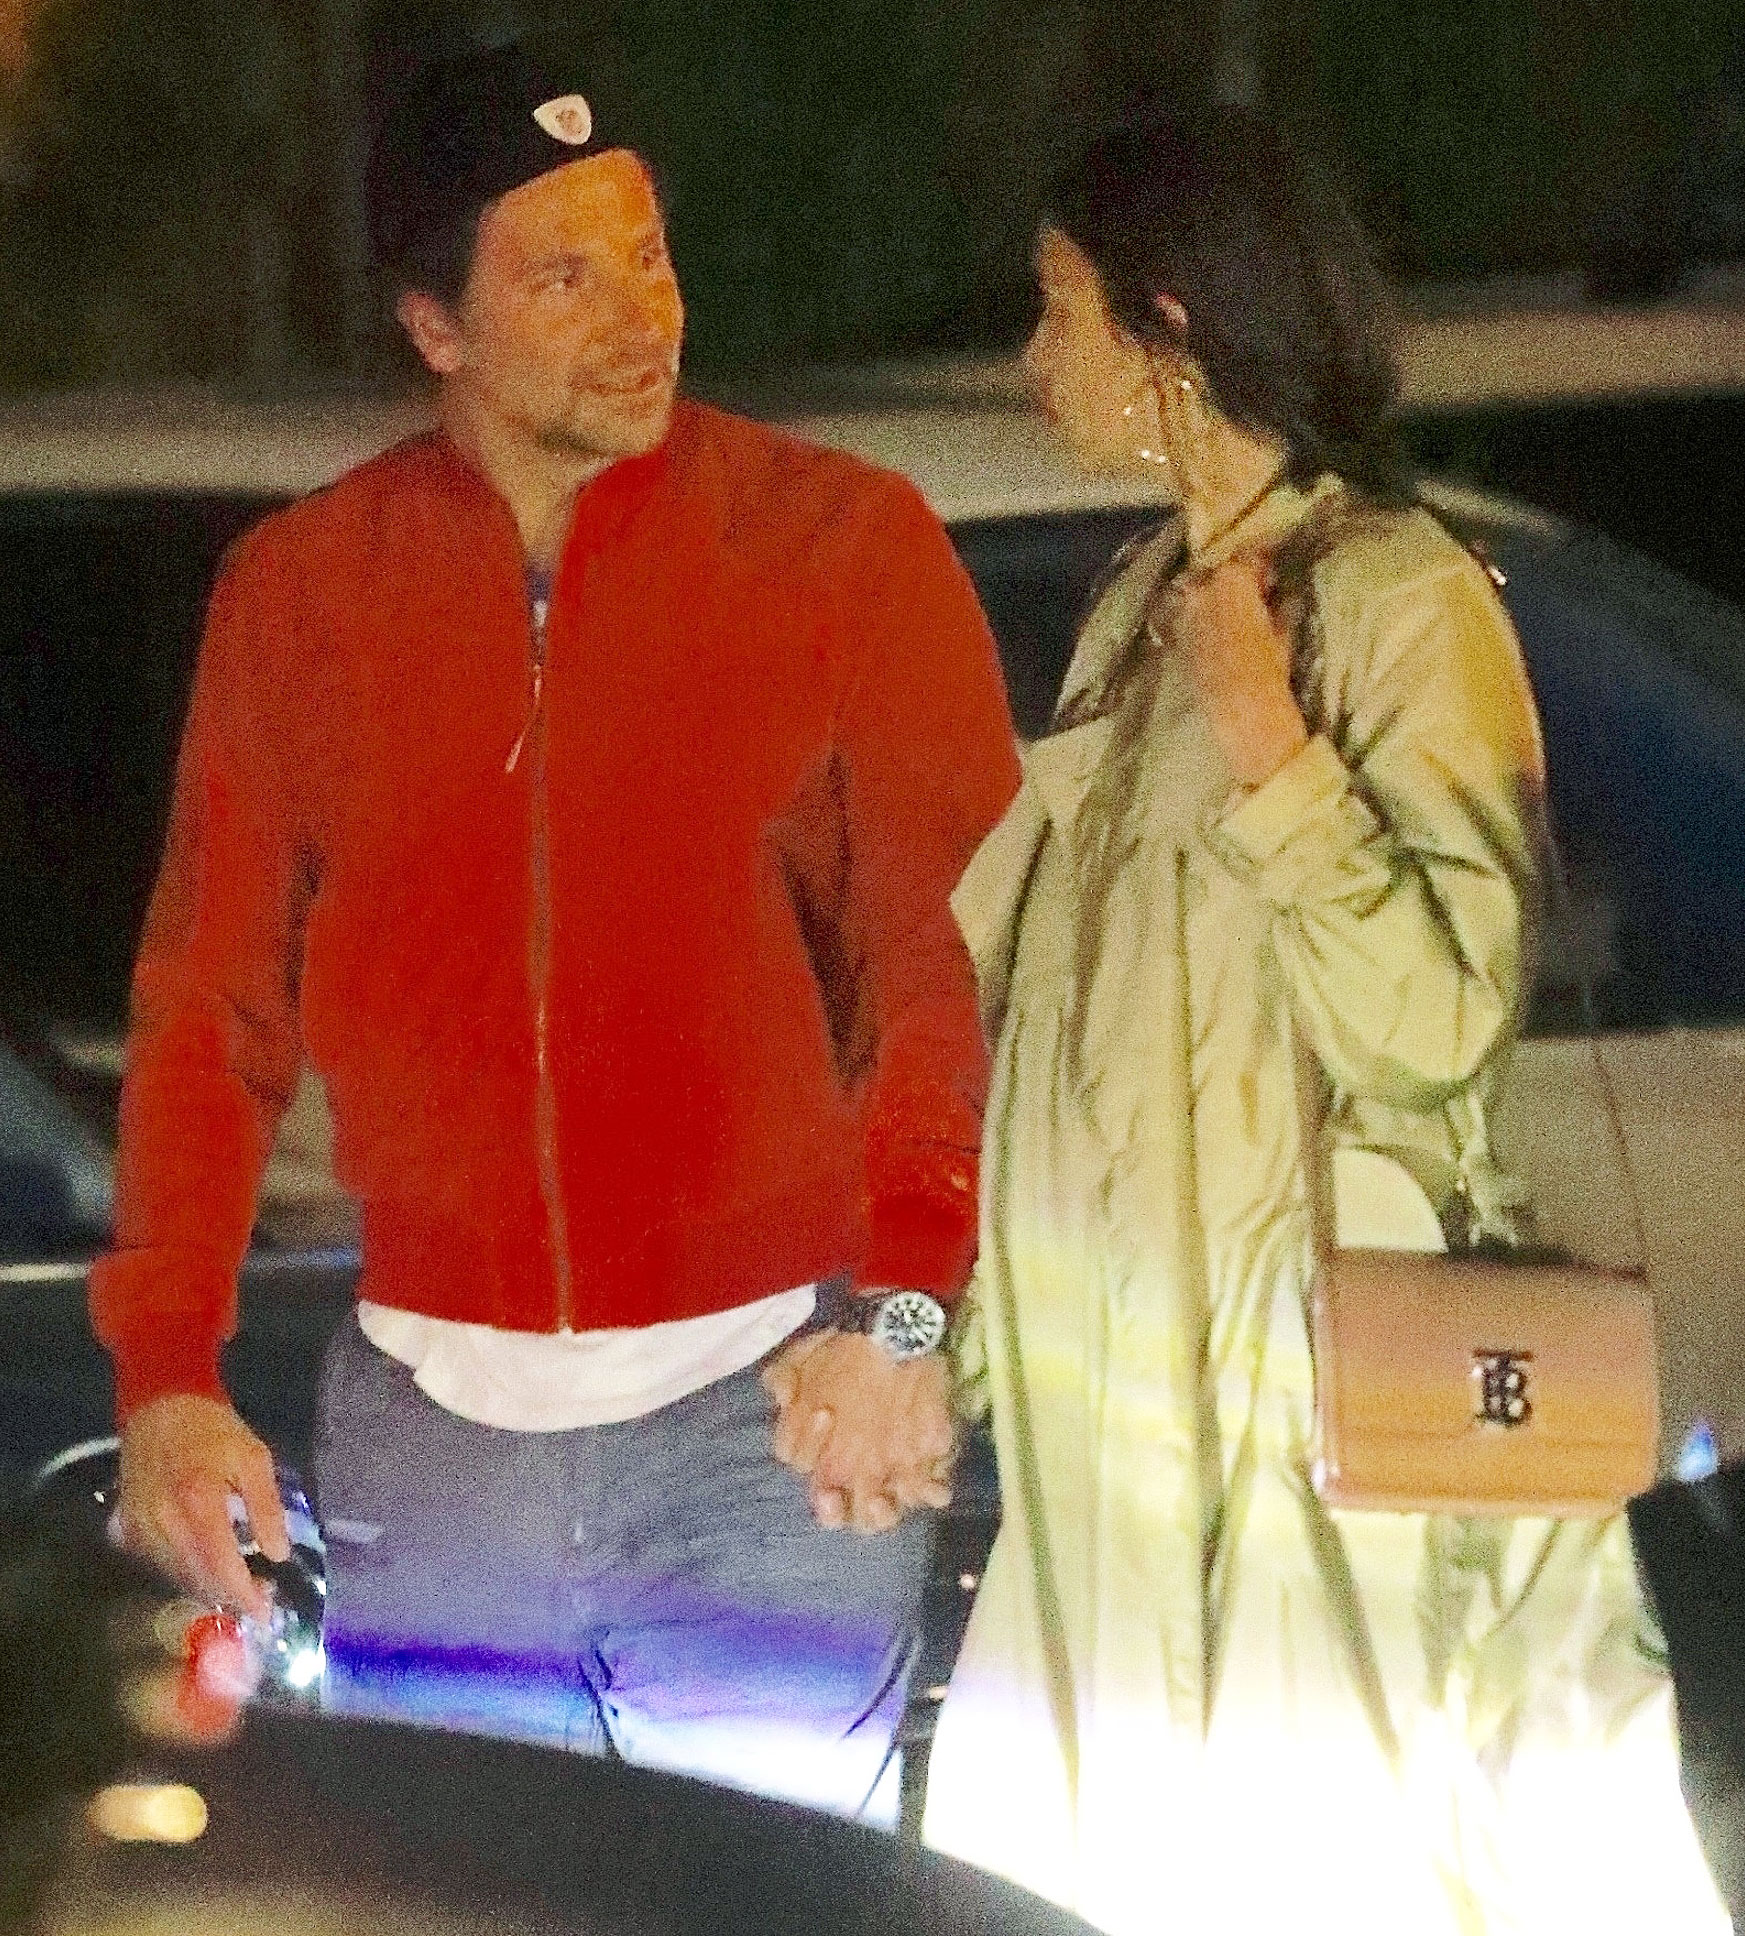 Bradley Cooper and Irina Shayk Look in Sync, Hold Hands After Lady Gaga Romance Rumors